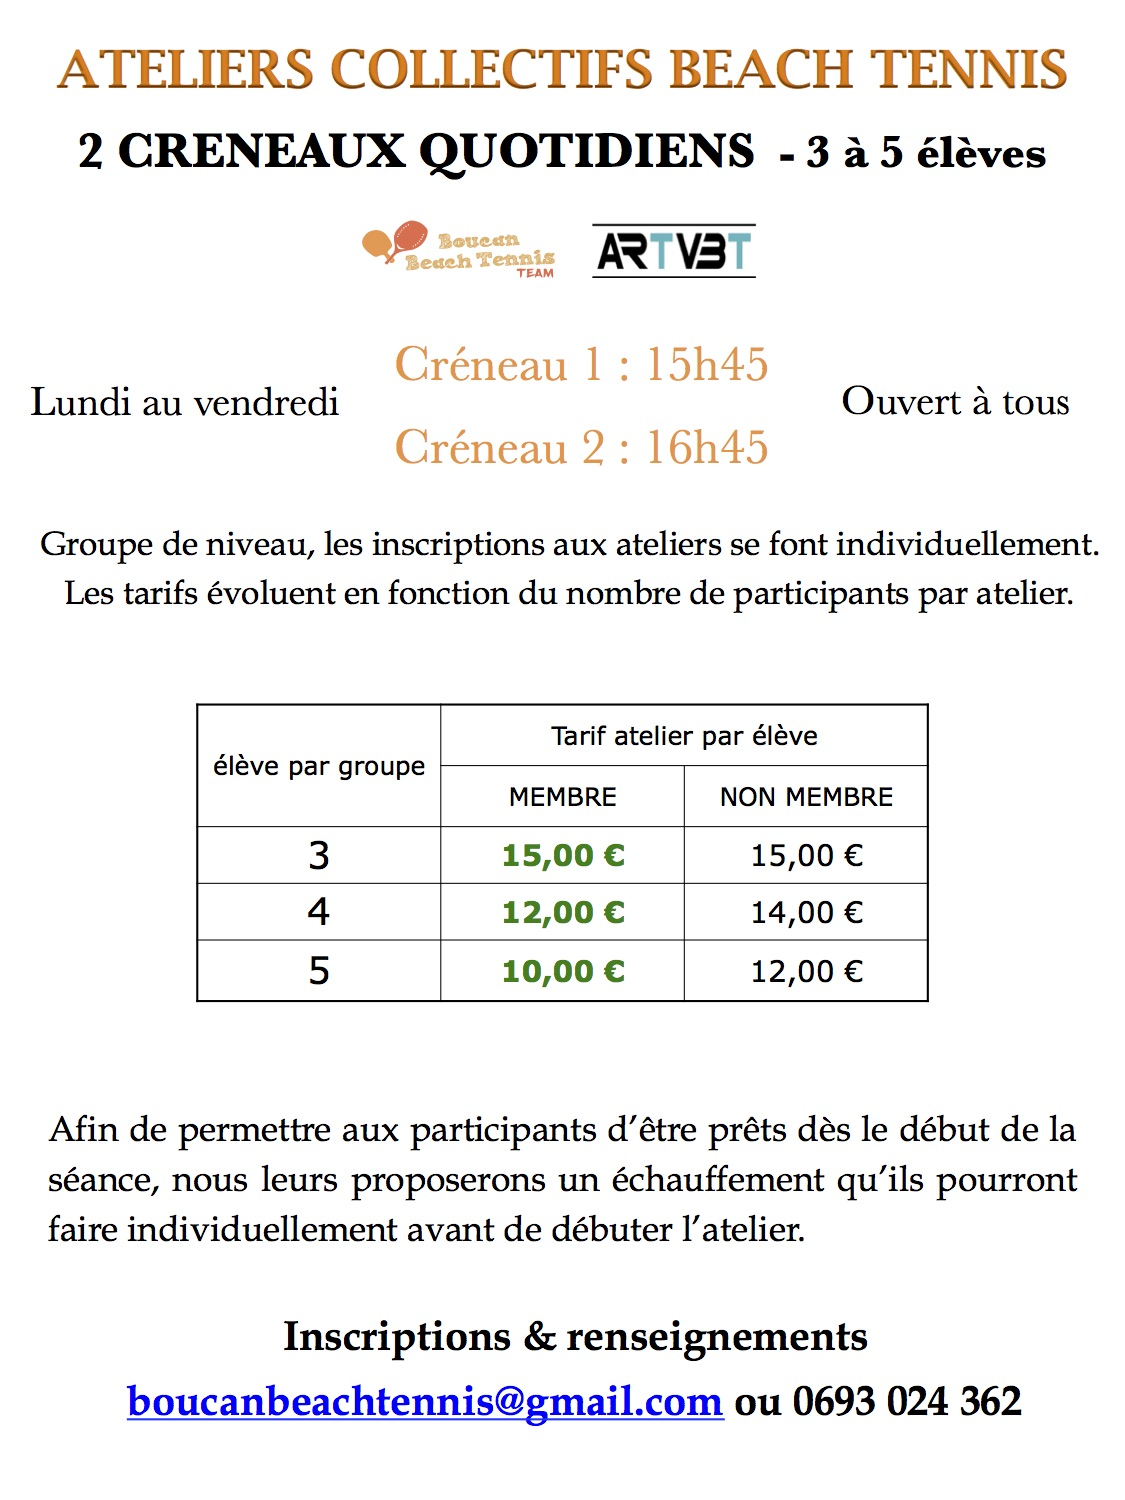 ateliers collectifs 2